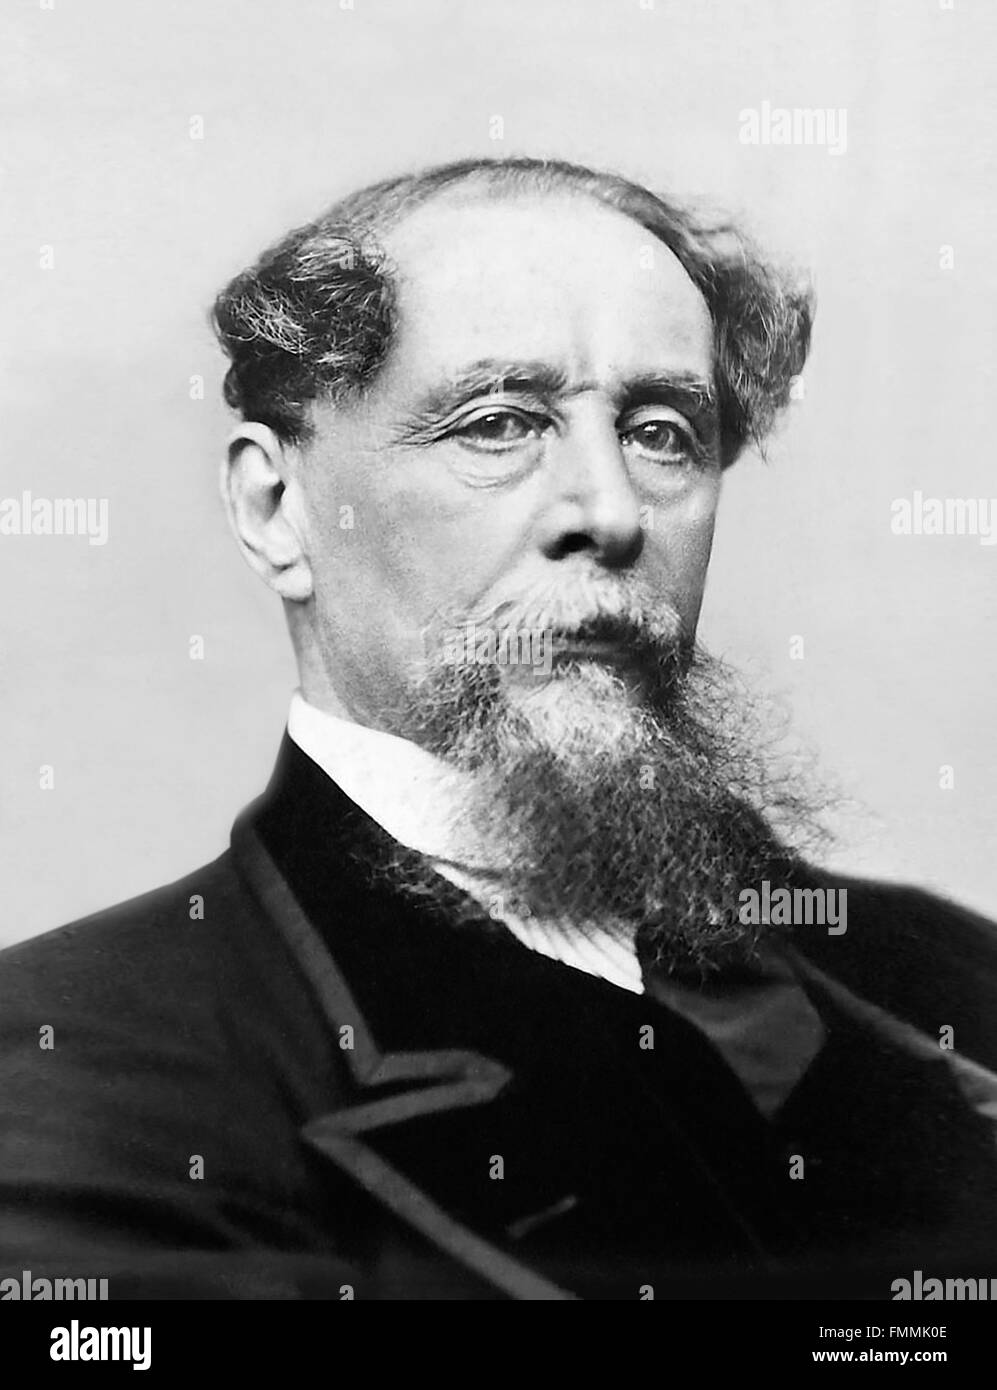 Charles Dickens. Portrait of the 19th century English writer, c.1867 - Stock Image